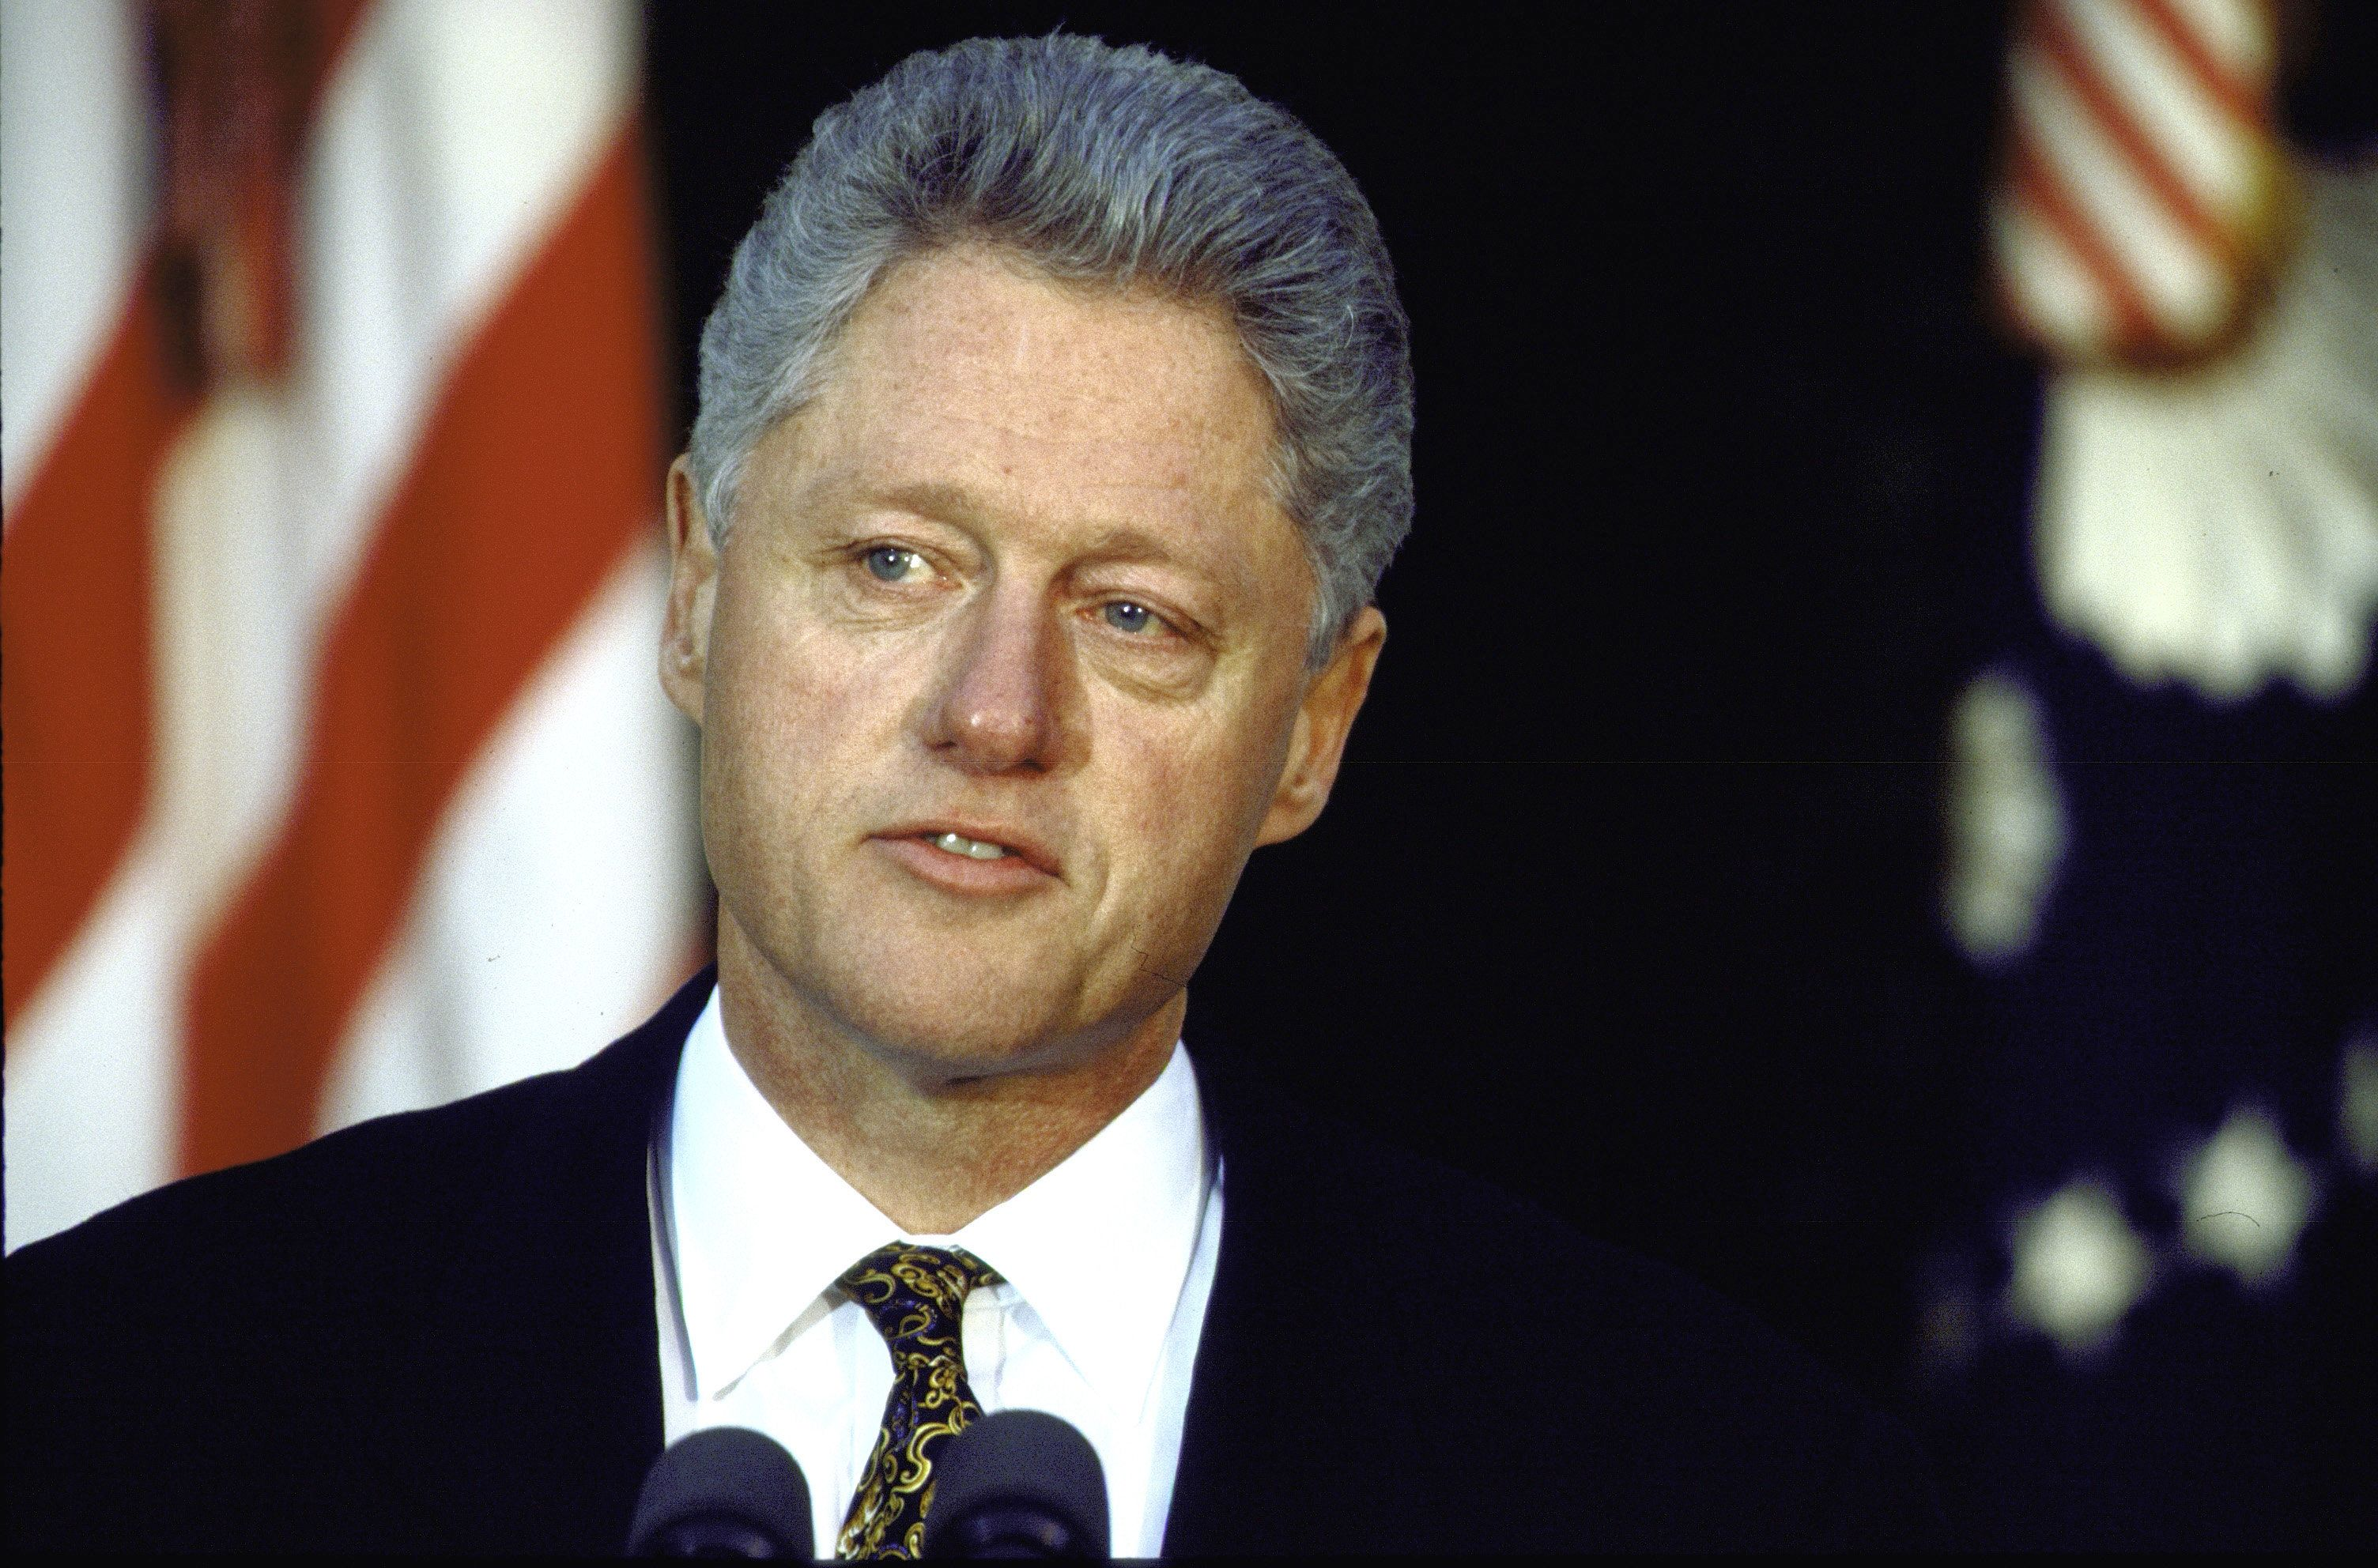 Pres. Bill Clinton speaking in serious portrait in White House Rose Garden, apologizing for his conduct in Lewinsky matter.  (Photo by Cynthia Johnson/The LIFE Images Collection/Getty Images)